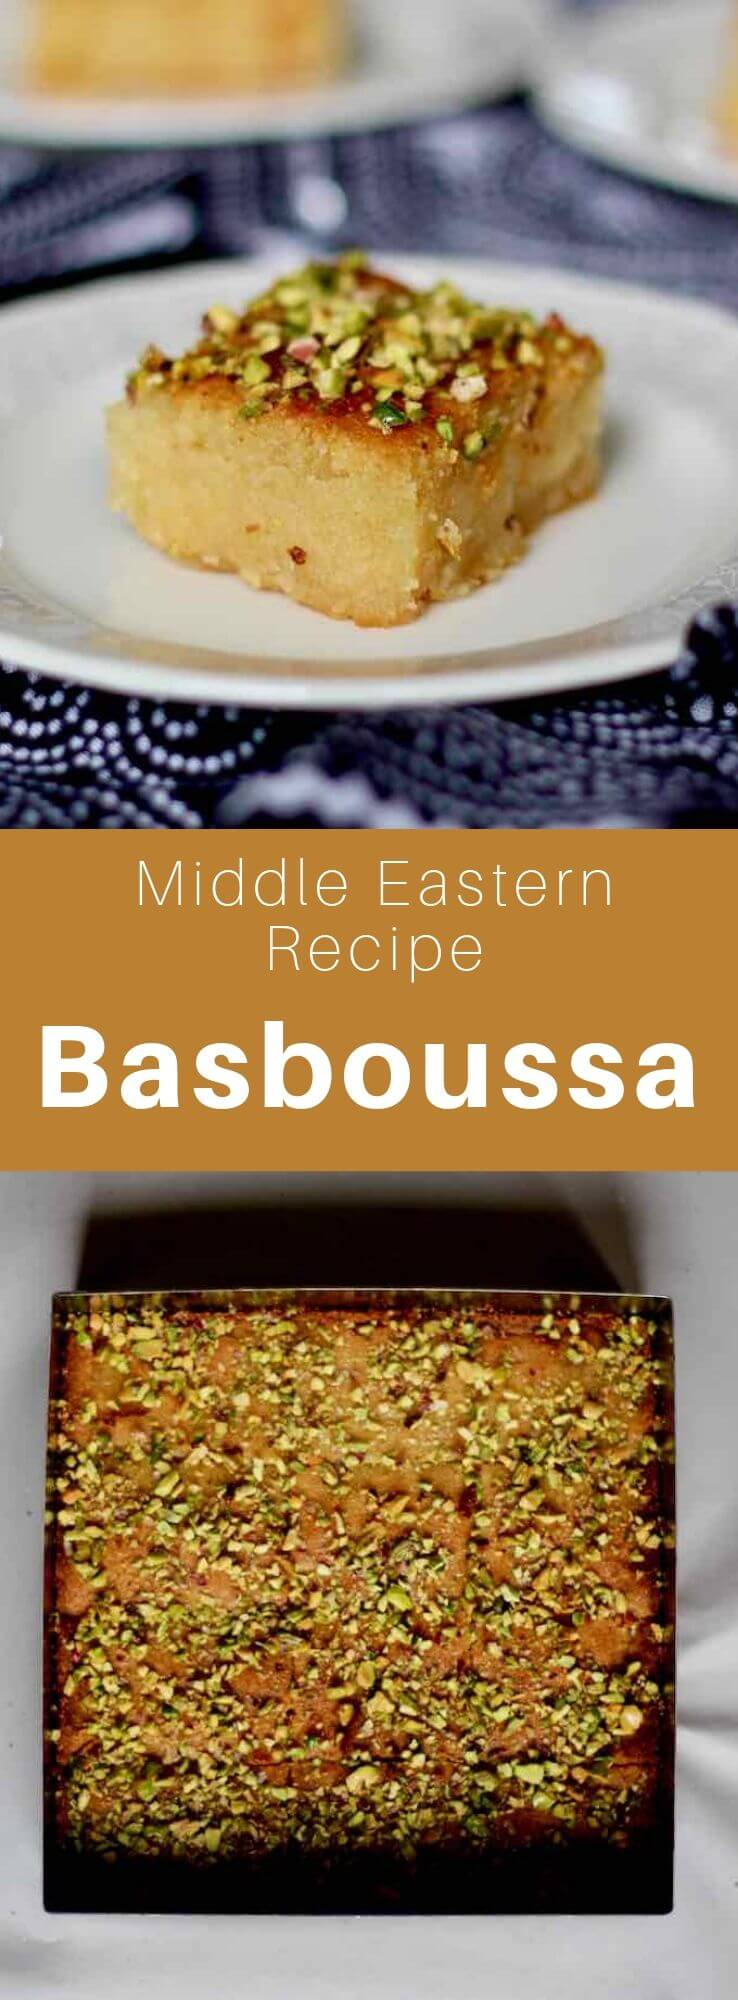 Basbousa is a pastry typical of the Middle East, North Africa and the Balkans made from semolina and ground almonds, that is soaked in flavored syrup. #LevantineCuisine #LevantineFood #LevantineRecipe #MiddleEasternCuisine #MiddleEasternRecipe #MiddleEasternFood #ArabCuisine #ArabRecipe #ArabFood #JewishFood #JewishCuisine #JewishRecipe #WorldCuisine #196flavors